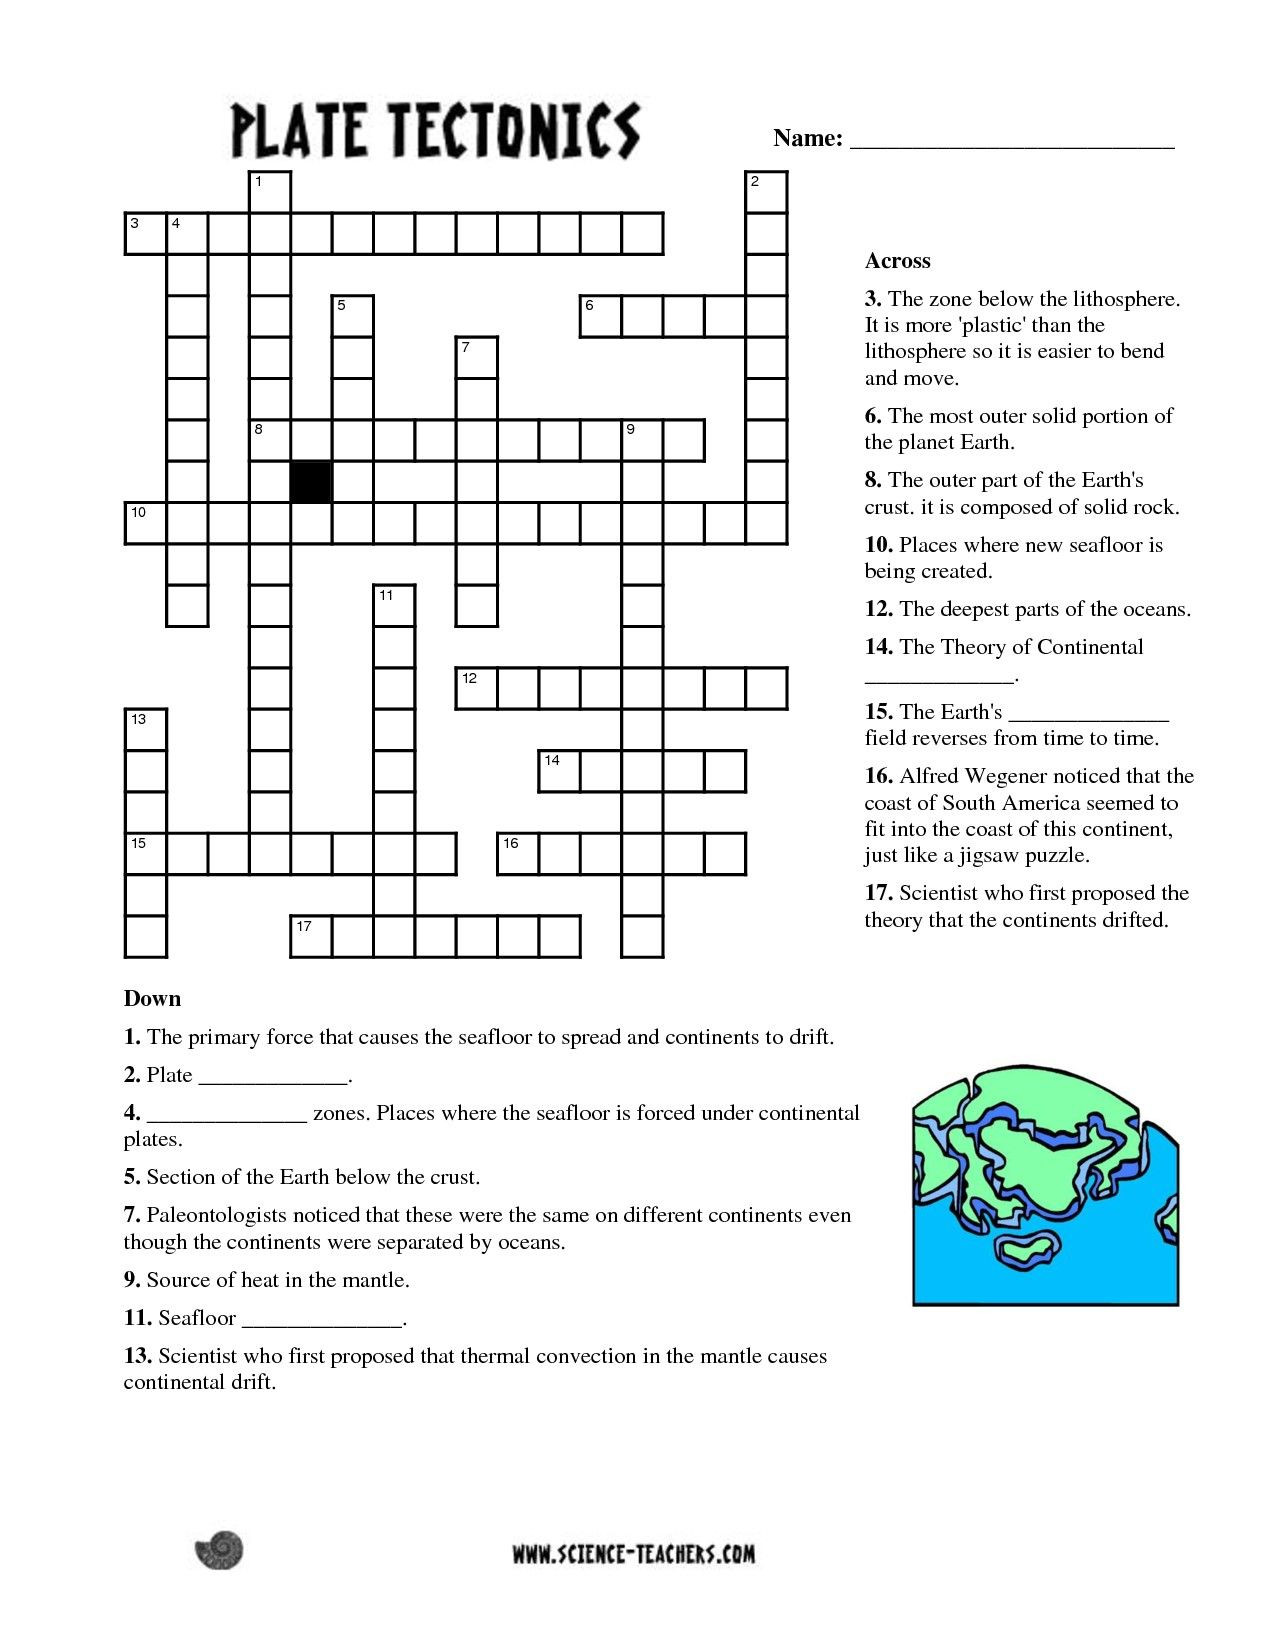 Plate Tectonic Worksheet Answers You Can Download Fresh Periodic Table Groups Crossword Clue